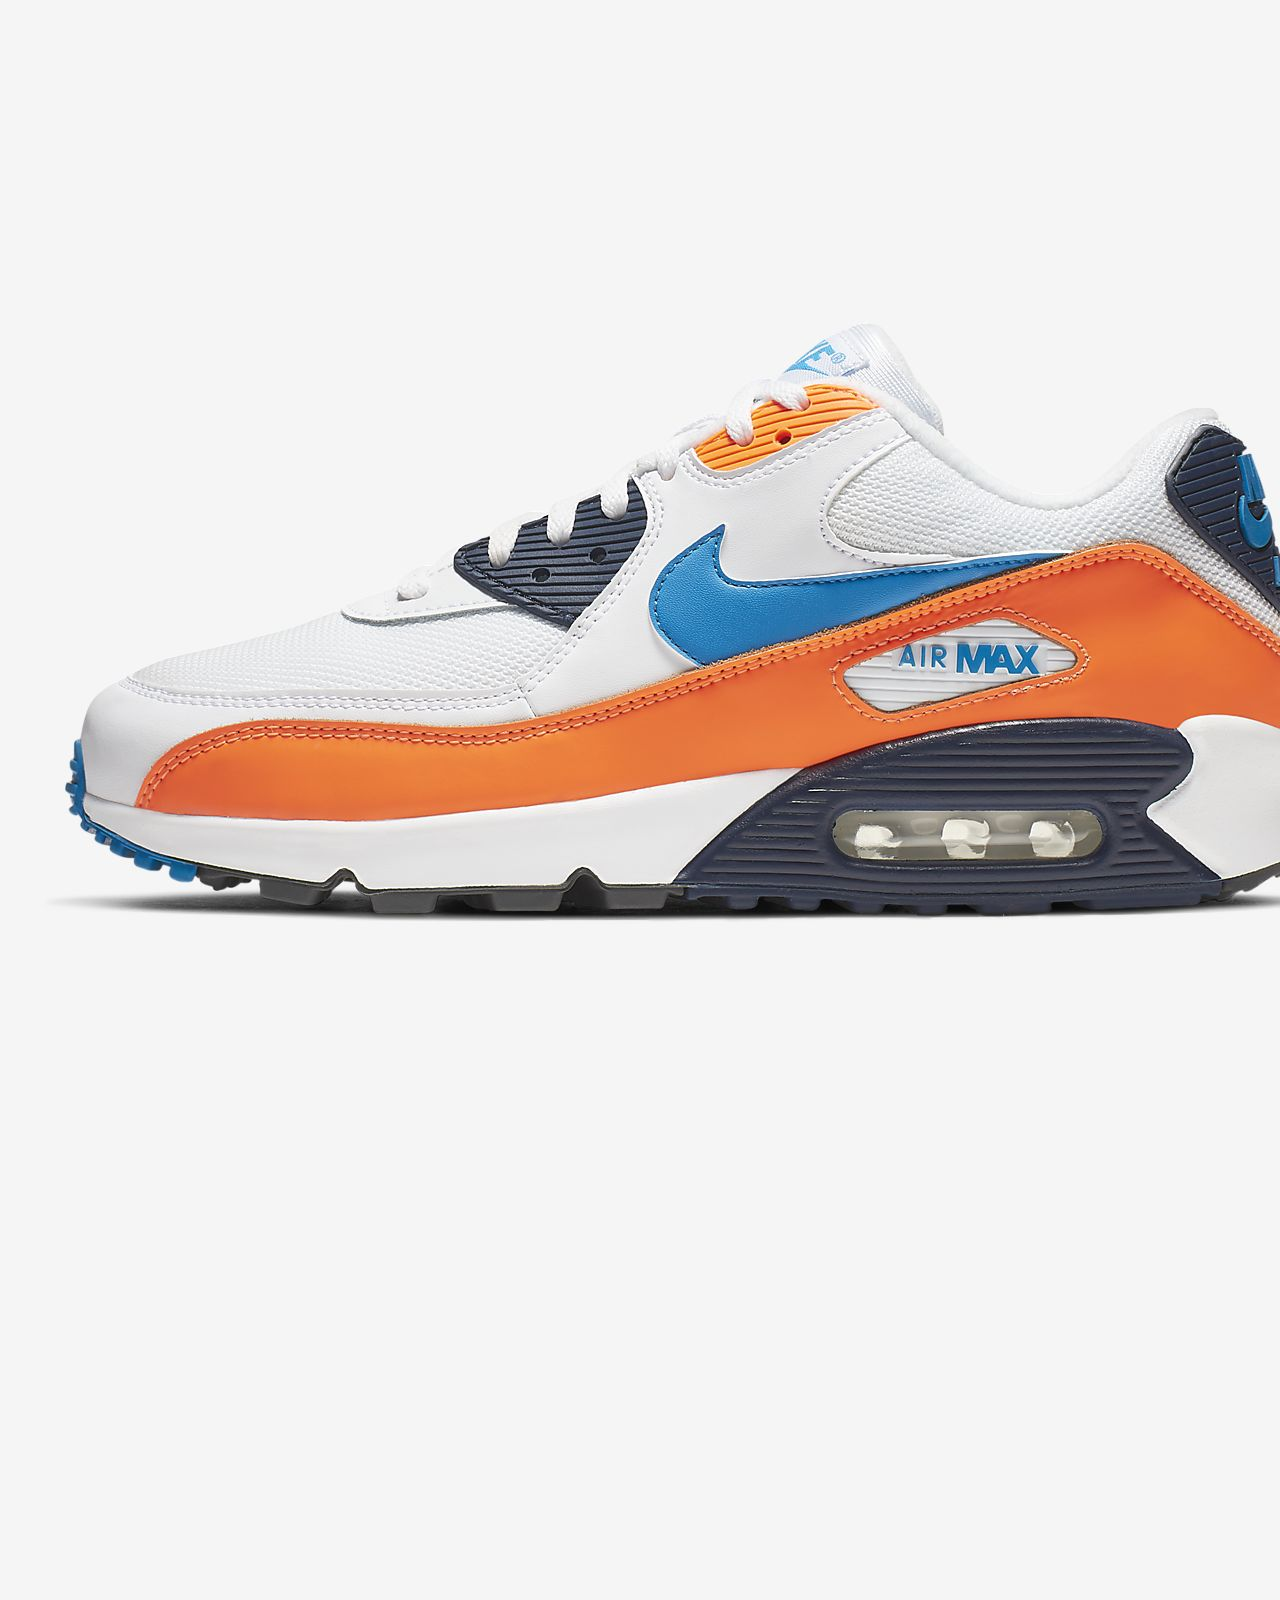 Mens Nike Air Max 90 Shoes Blue Black Grey Orange,nike air